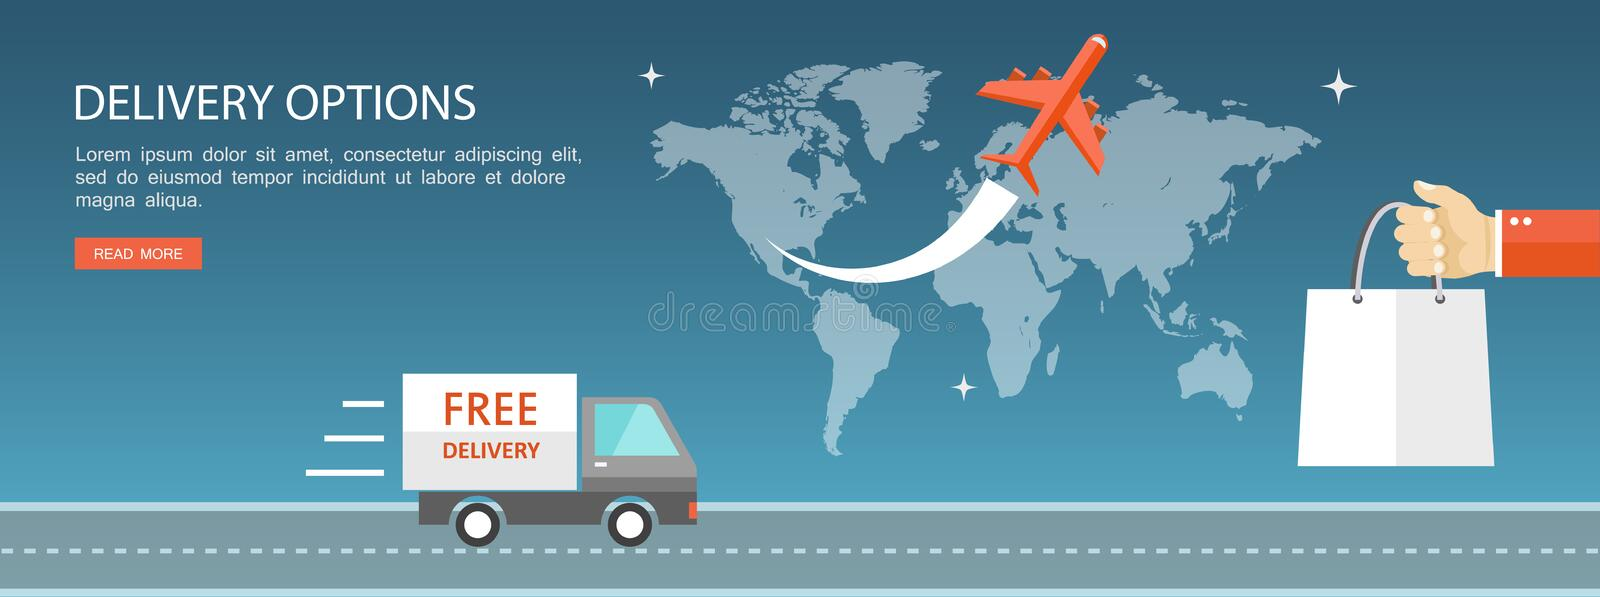 Delivery options flat illustration stock photo